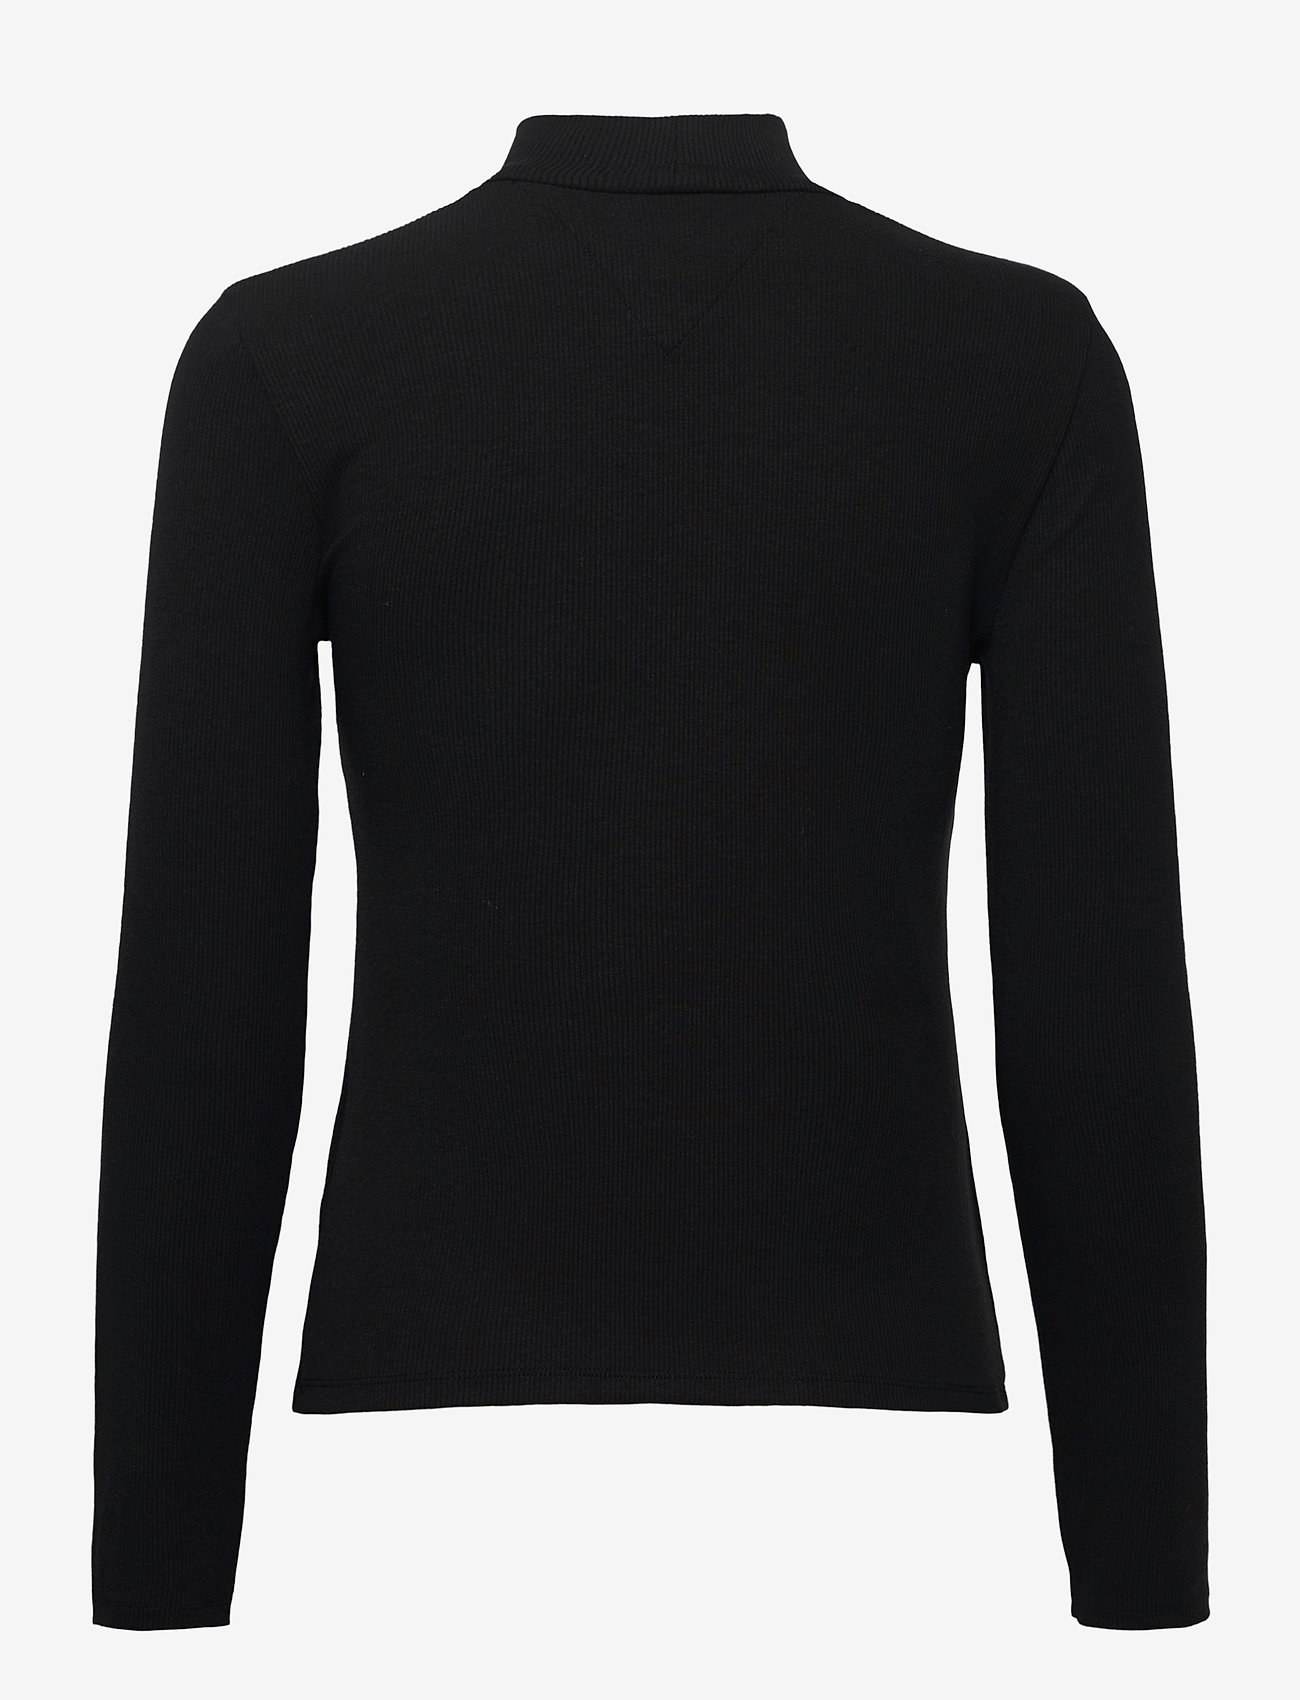 Tommy Jeans - TJW RIB MOCK NECK LONGSLEEVE - long-sleeved tops - black - 1